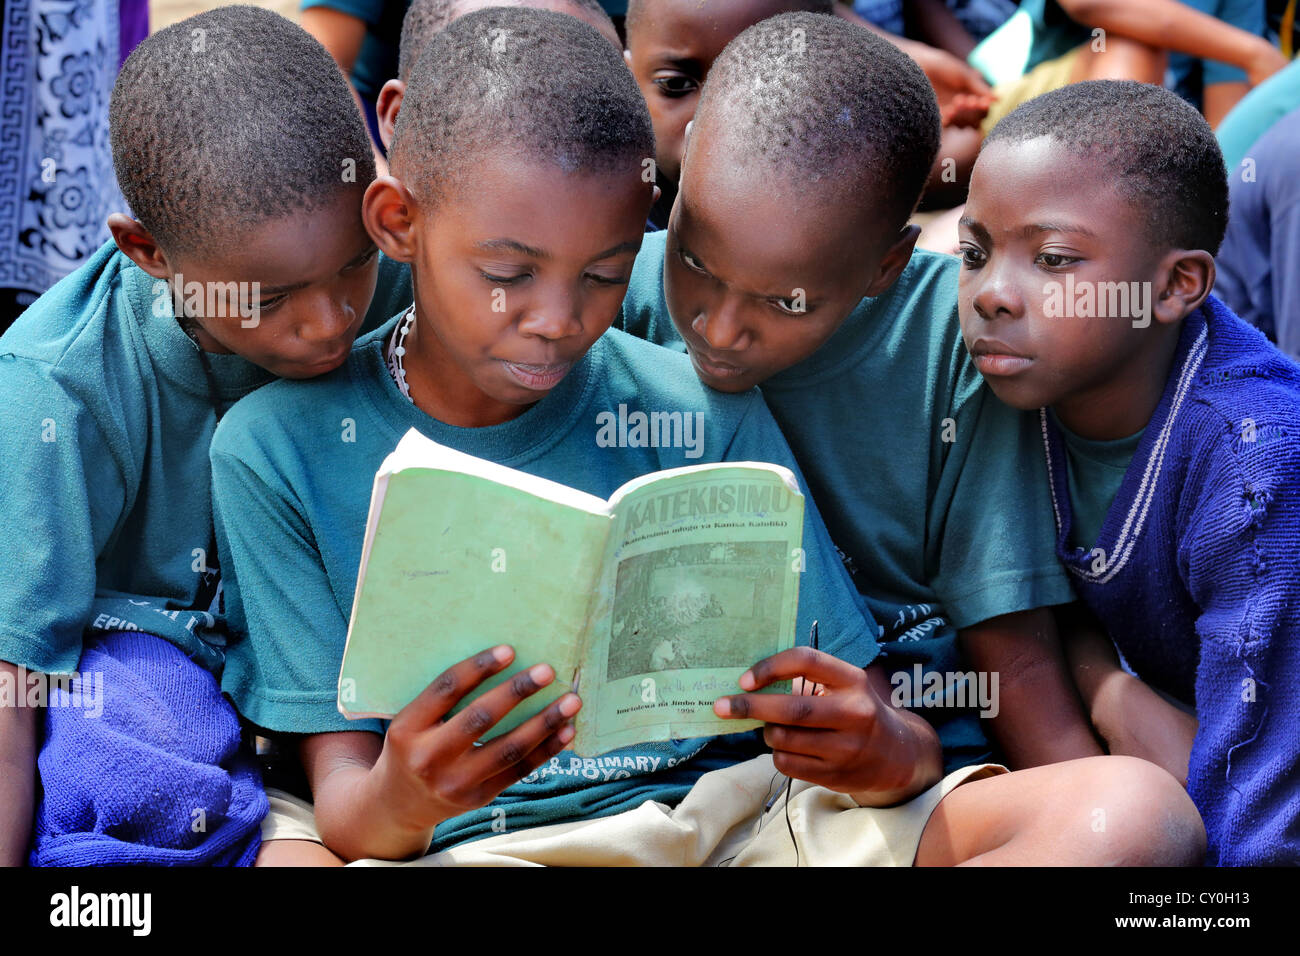 Pupils during the catholic religious education read in a catechesis book. Bagamoyo, Tansania - Stock Image